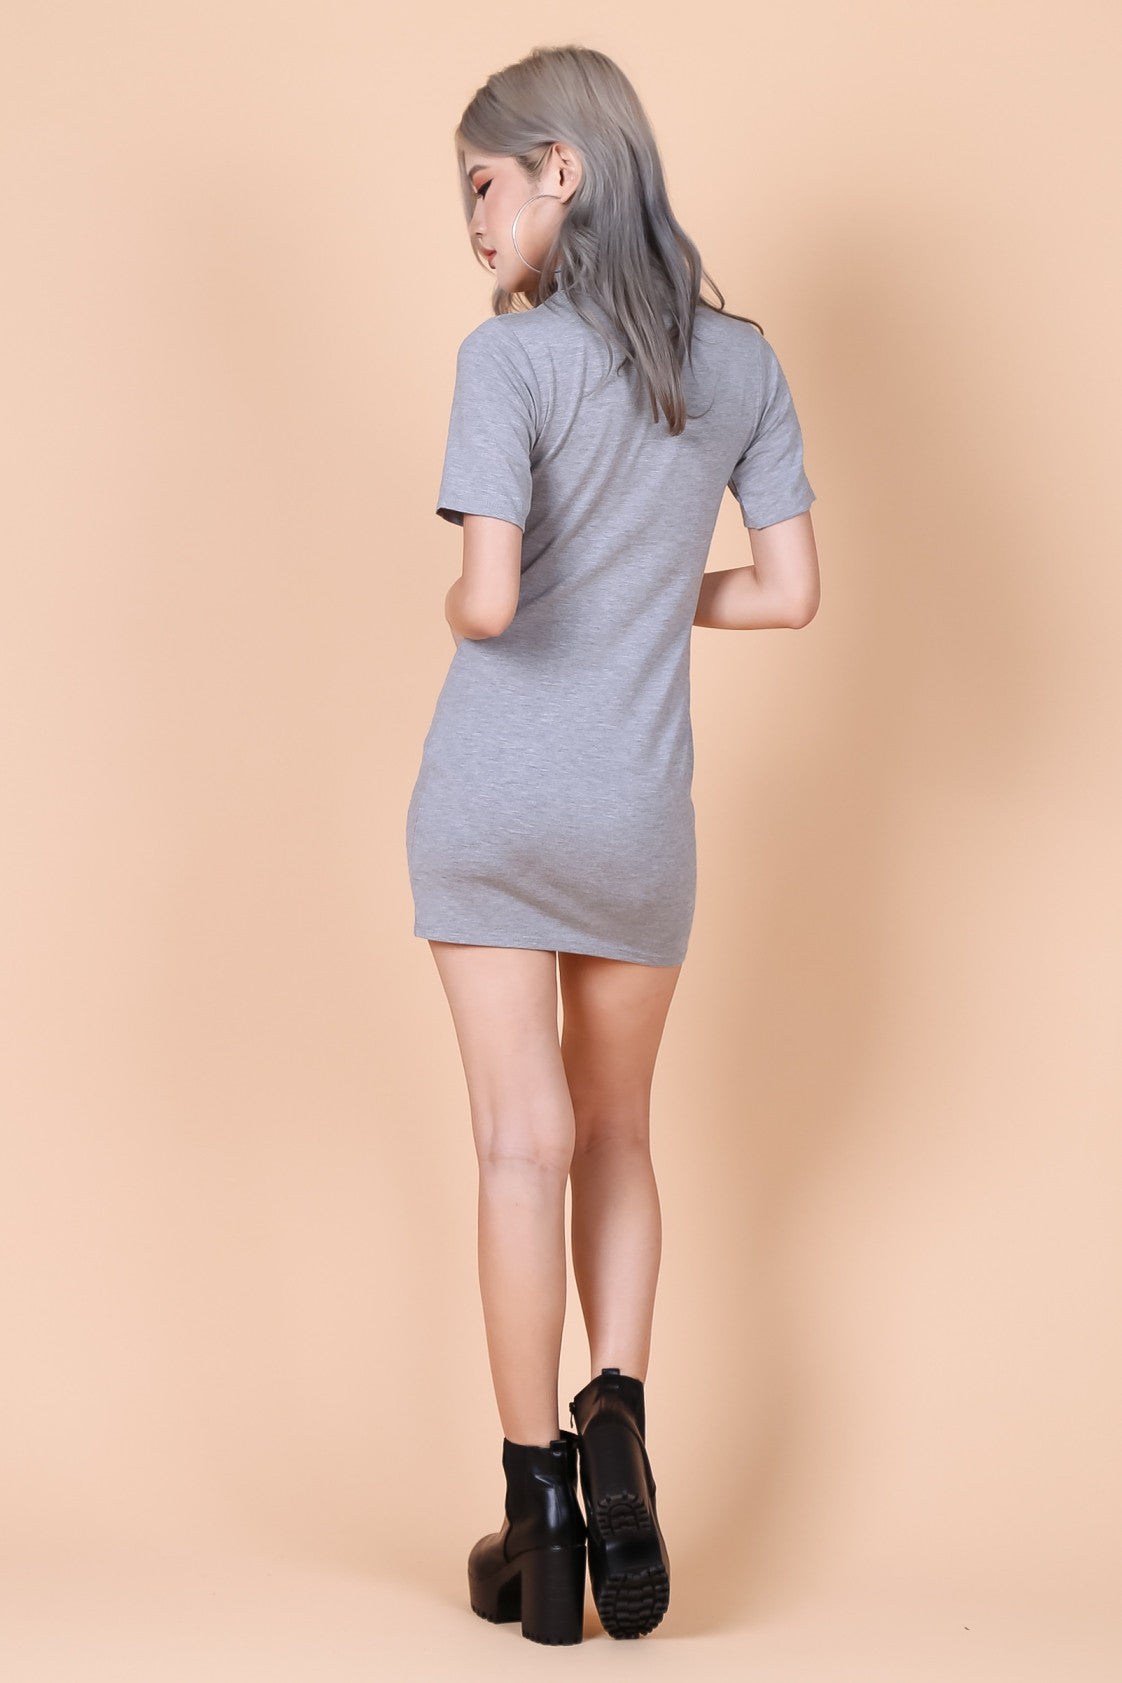 *RESTOCKED* HIGH NECK BASIC TEE DRESS IN LIGHT GREY - TOPAZETTE